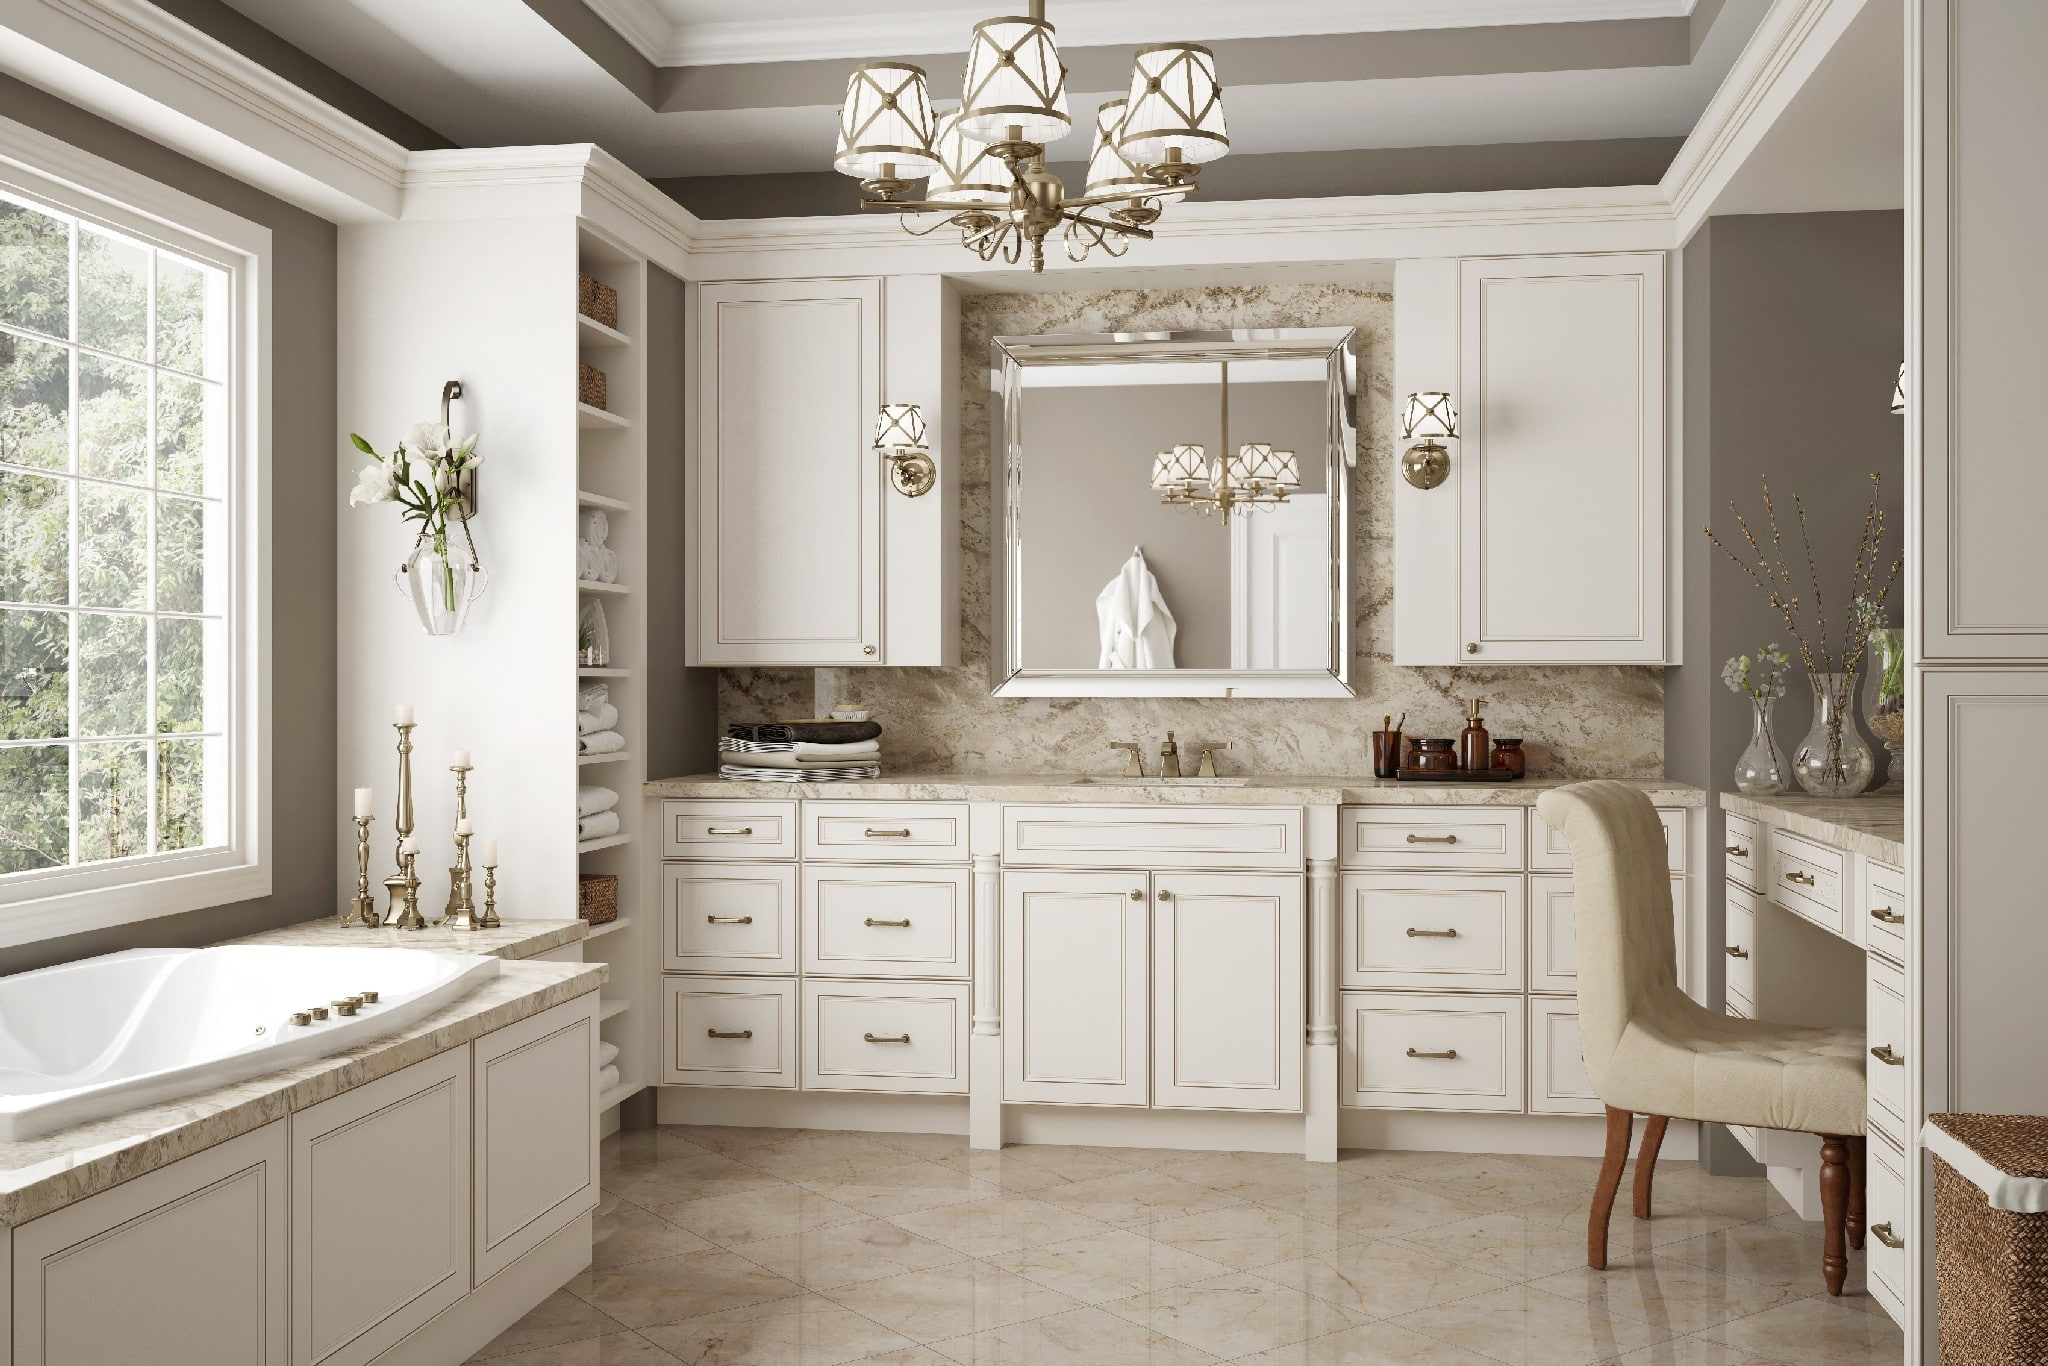 Brantley Antique White Glaze - Ready To Assemble Kitchen .  sc 1 st  Visual Hunt & Antique White Kitchen Cabinets - Visual Hunt